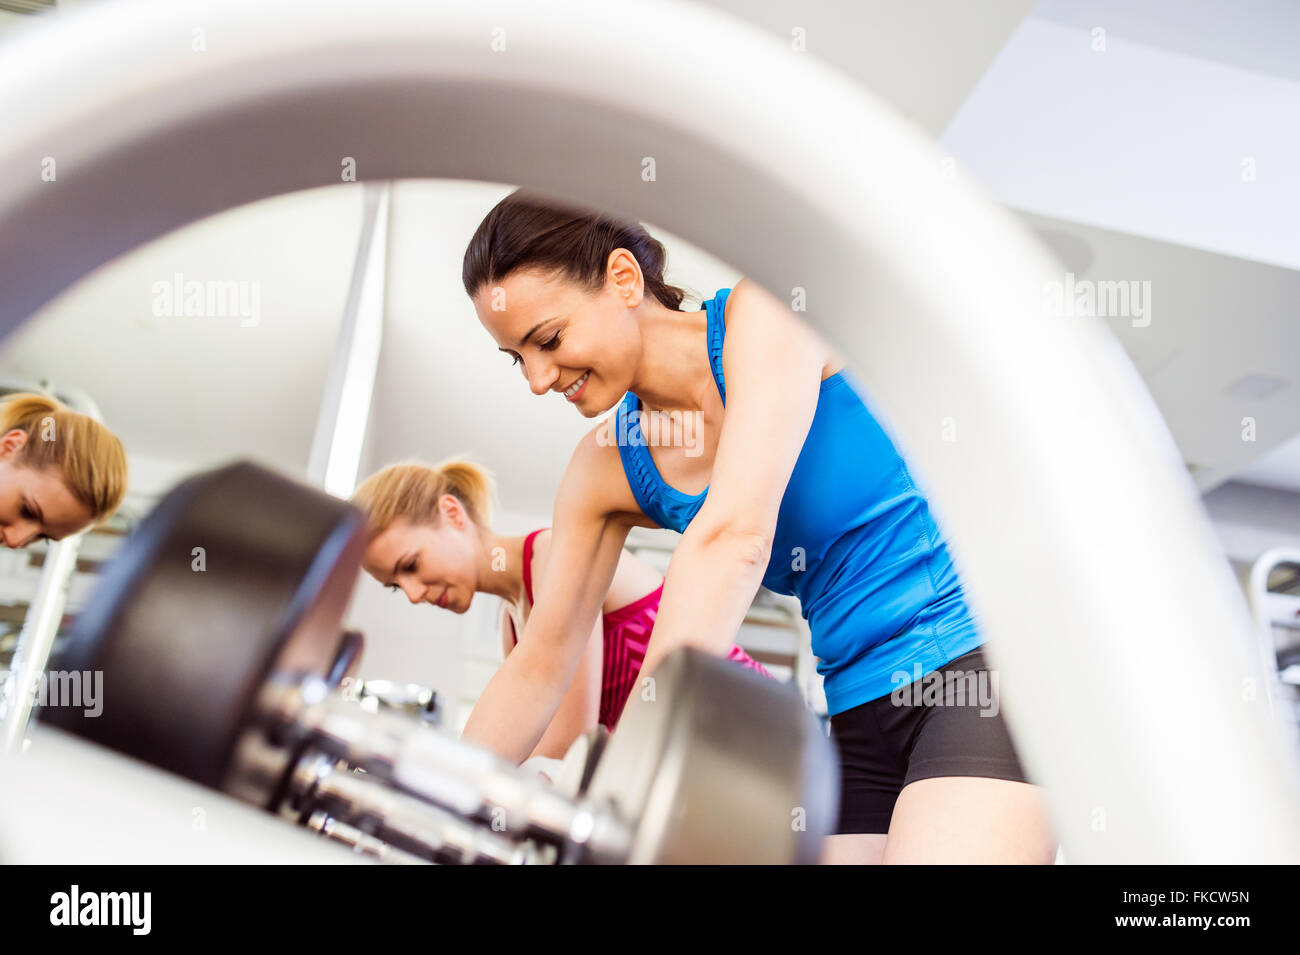 Detail of women in gym working out with weights - Stock Image